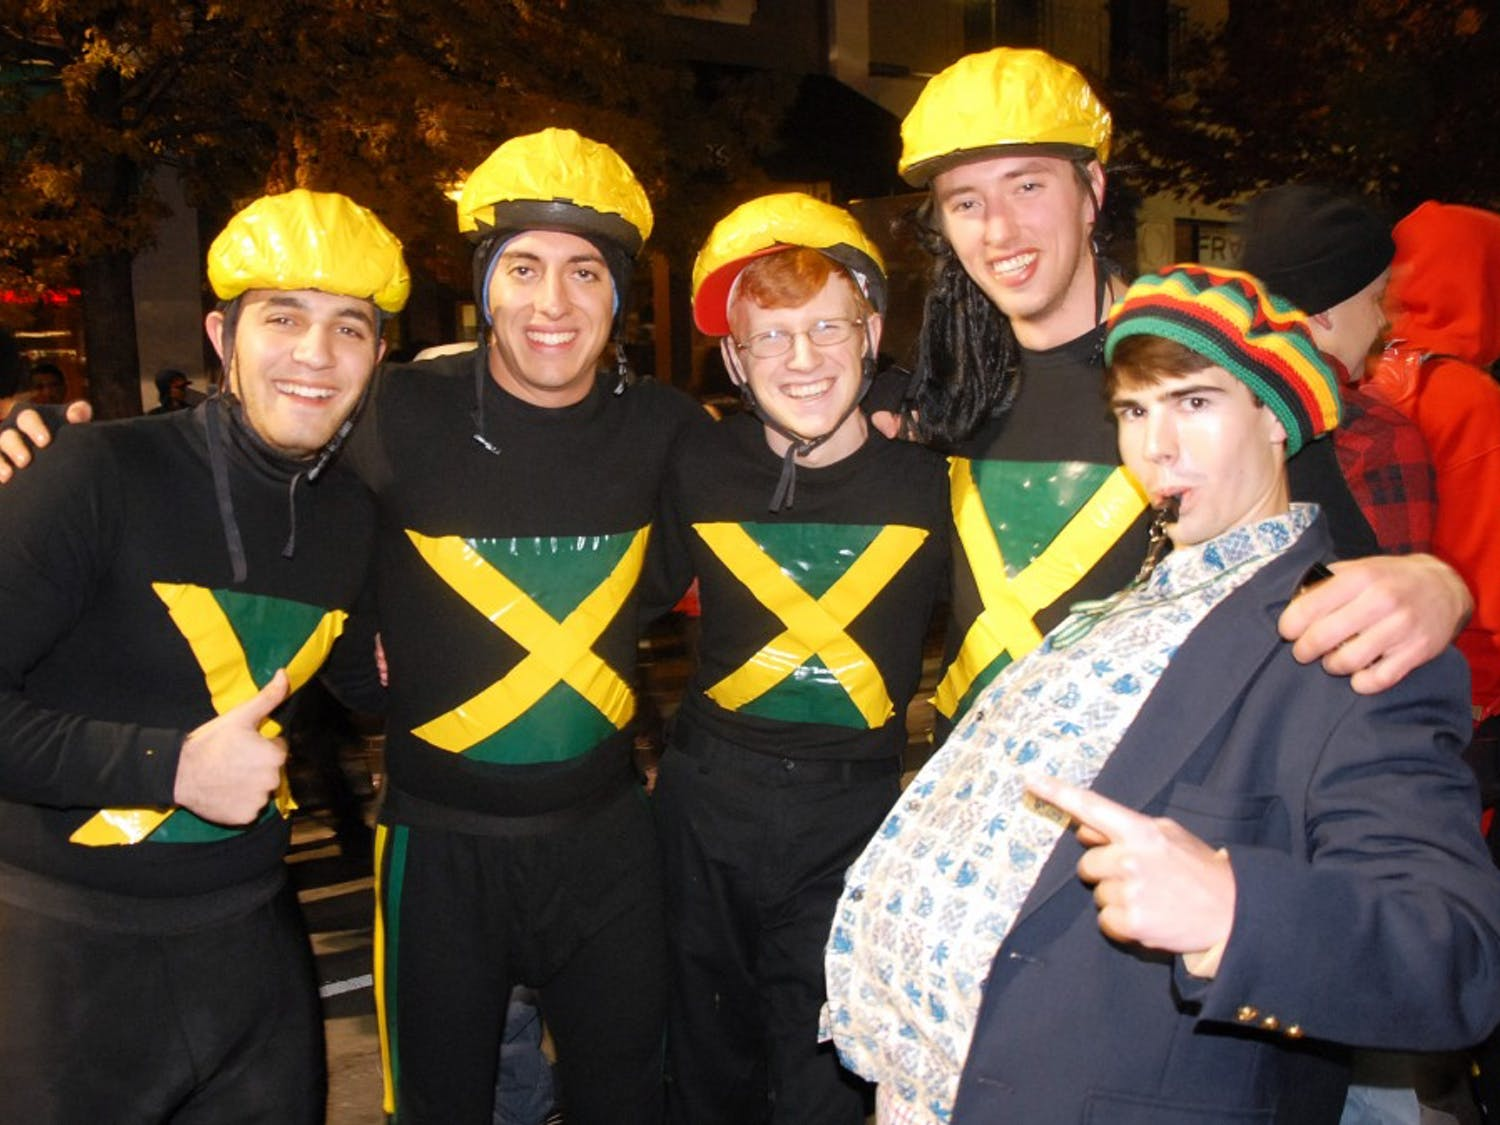 Students pose as members of the Jamaican bobsled team.